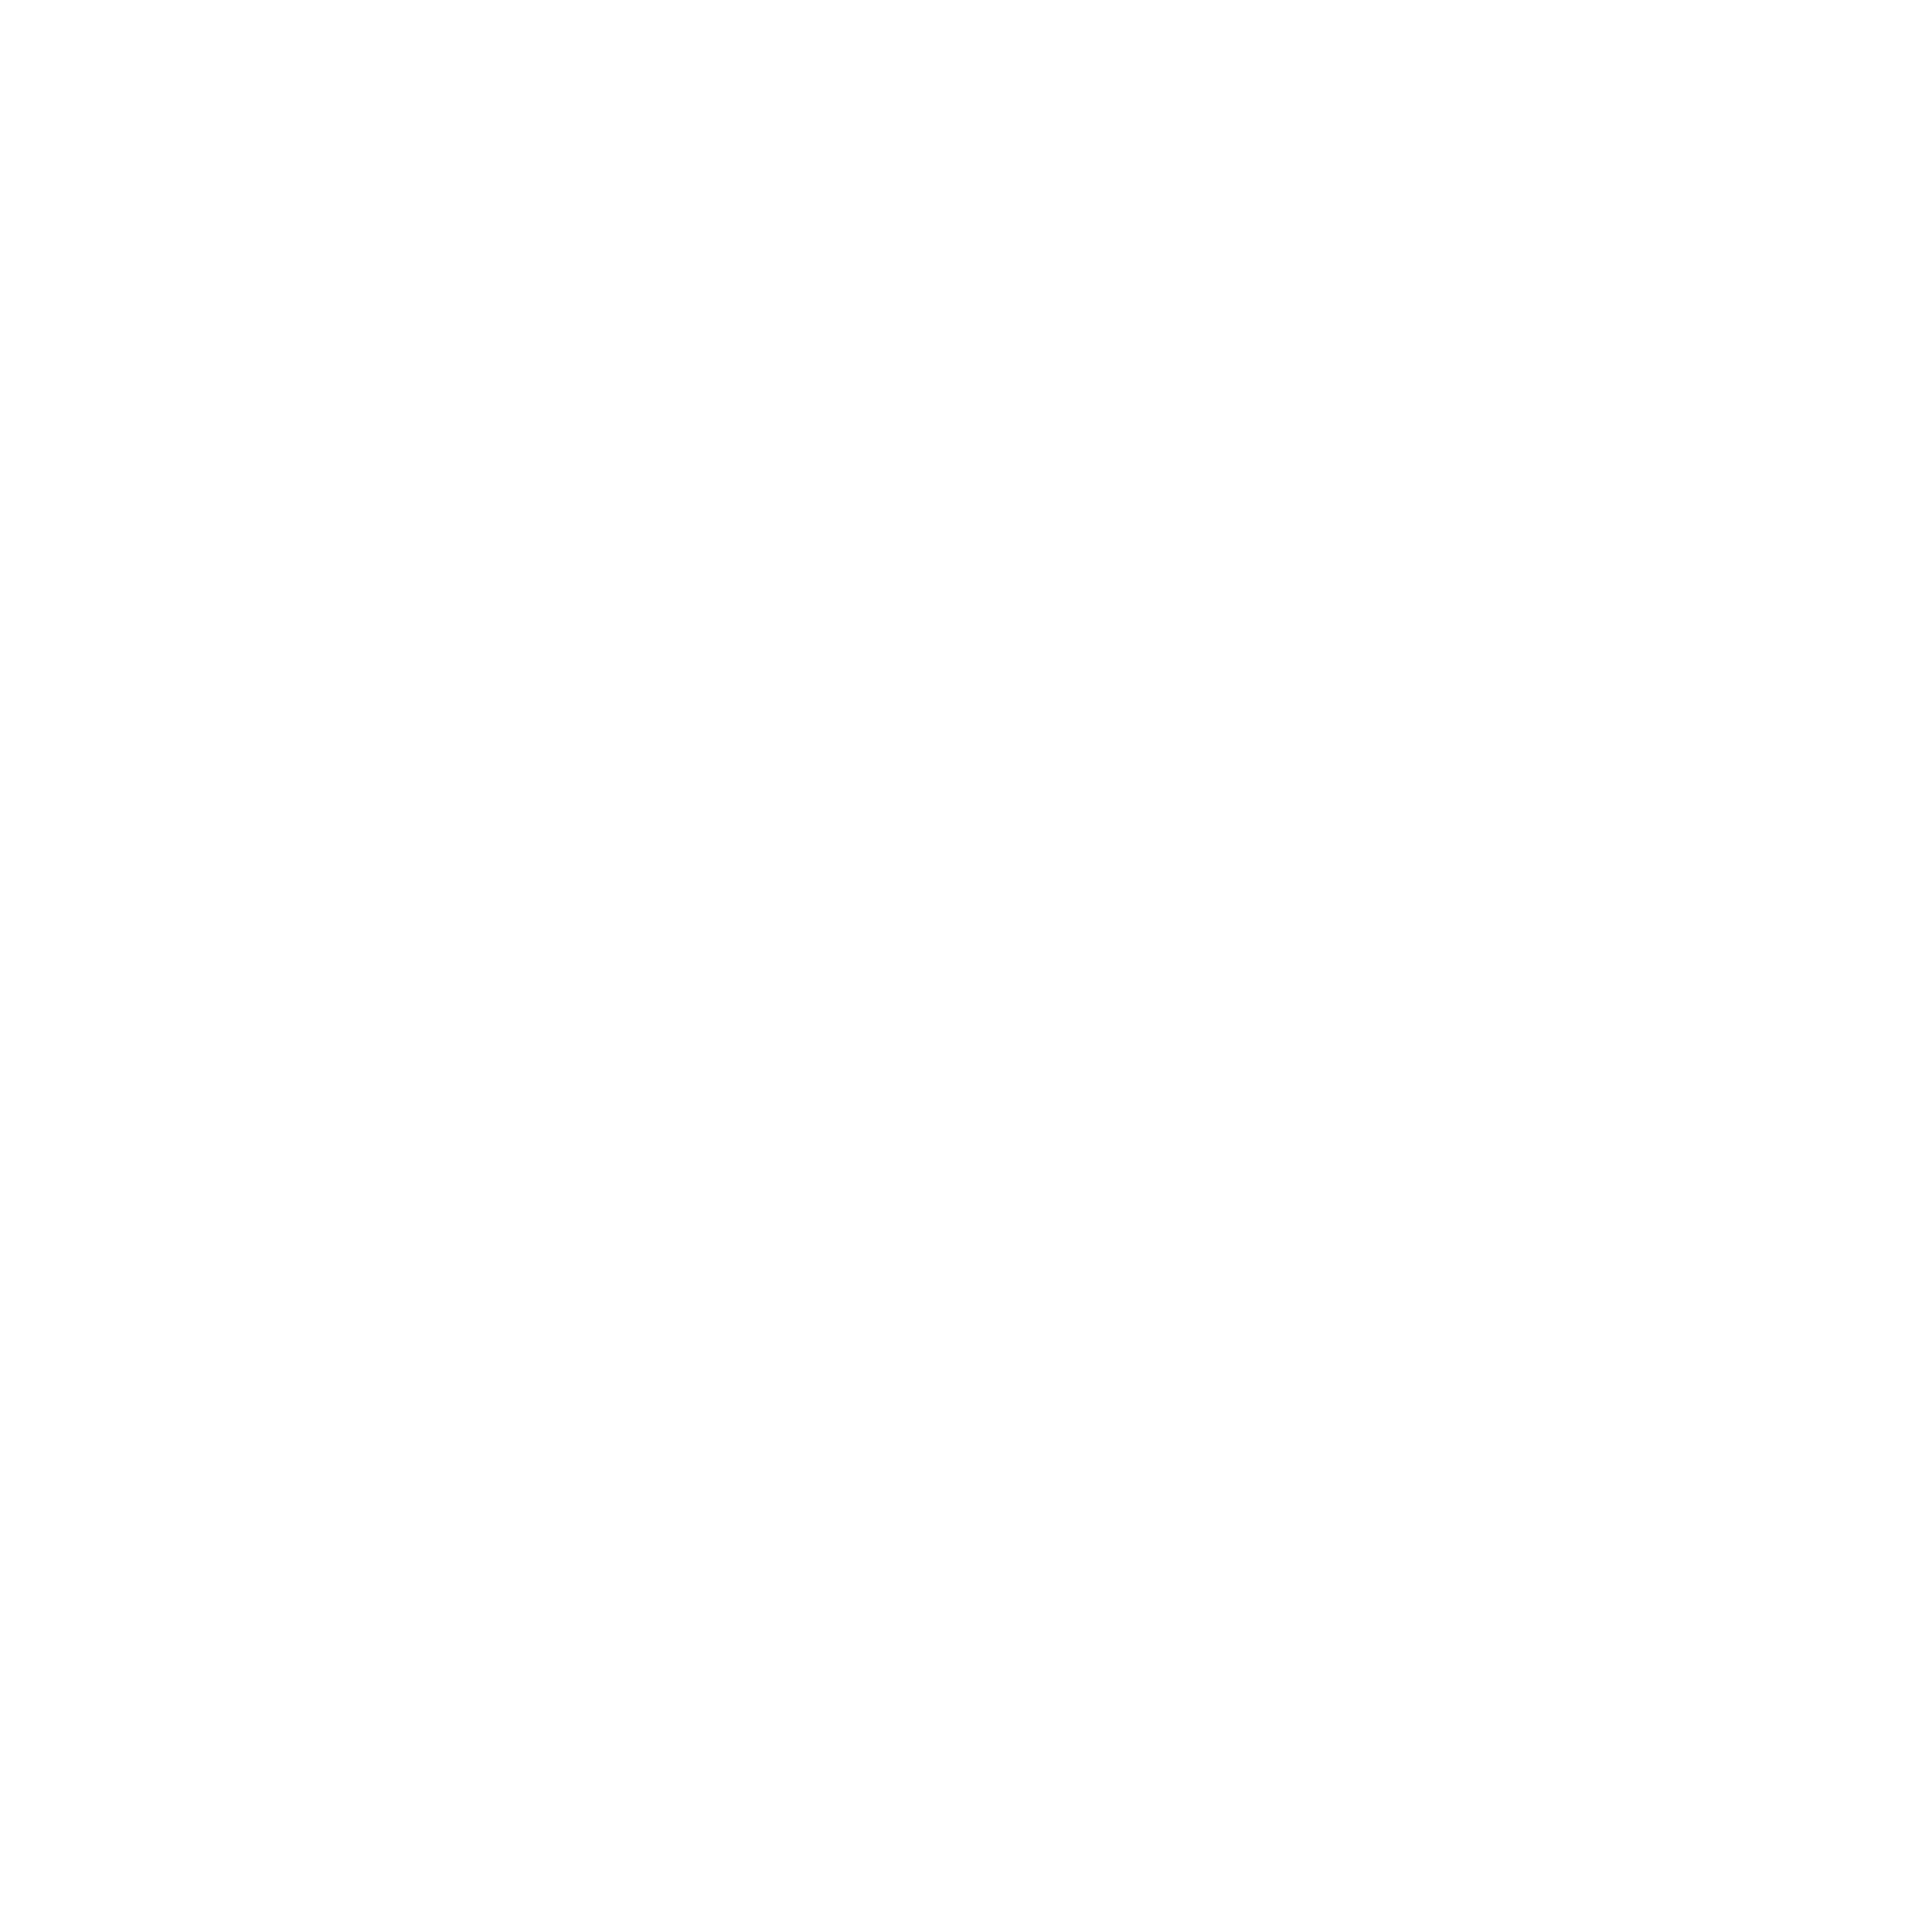 Figure 3: A 5-hole in a planar set.